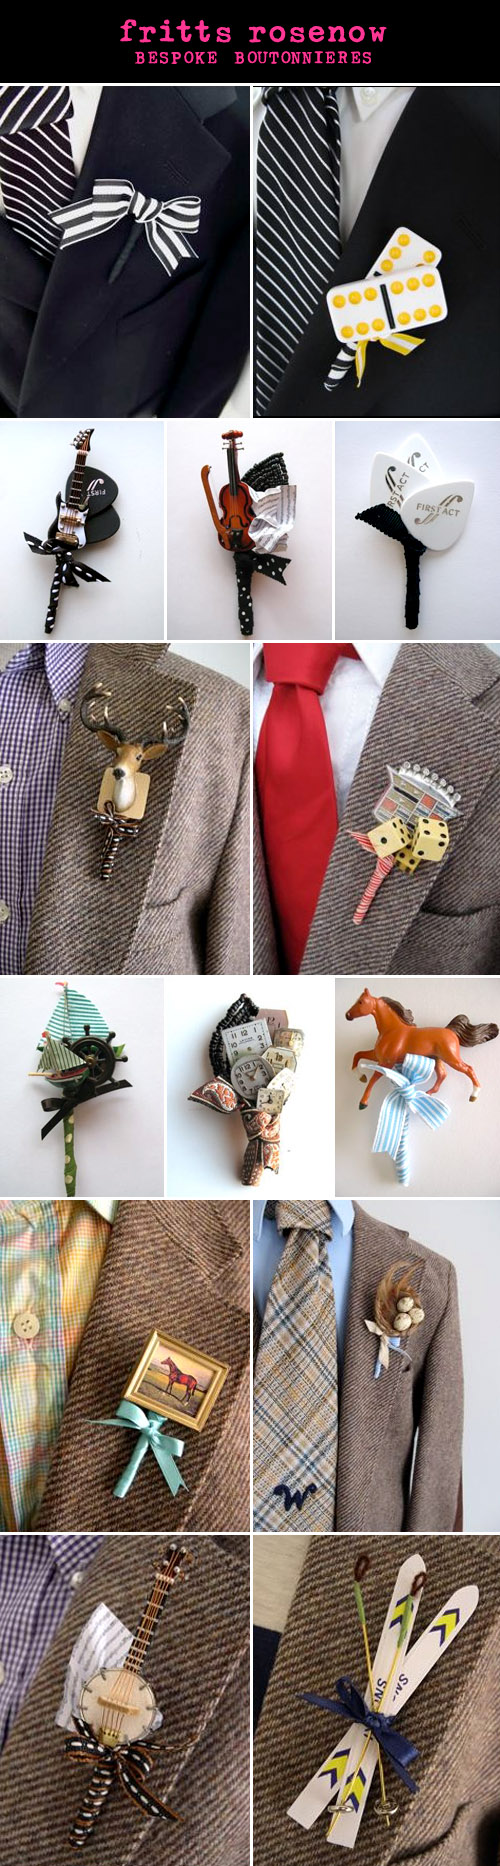 creative, alternative wedding boutonnieres for grooms and groomsmen from Fritts Rosenow